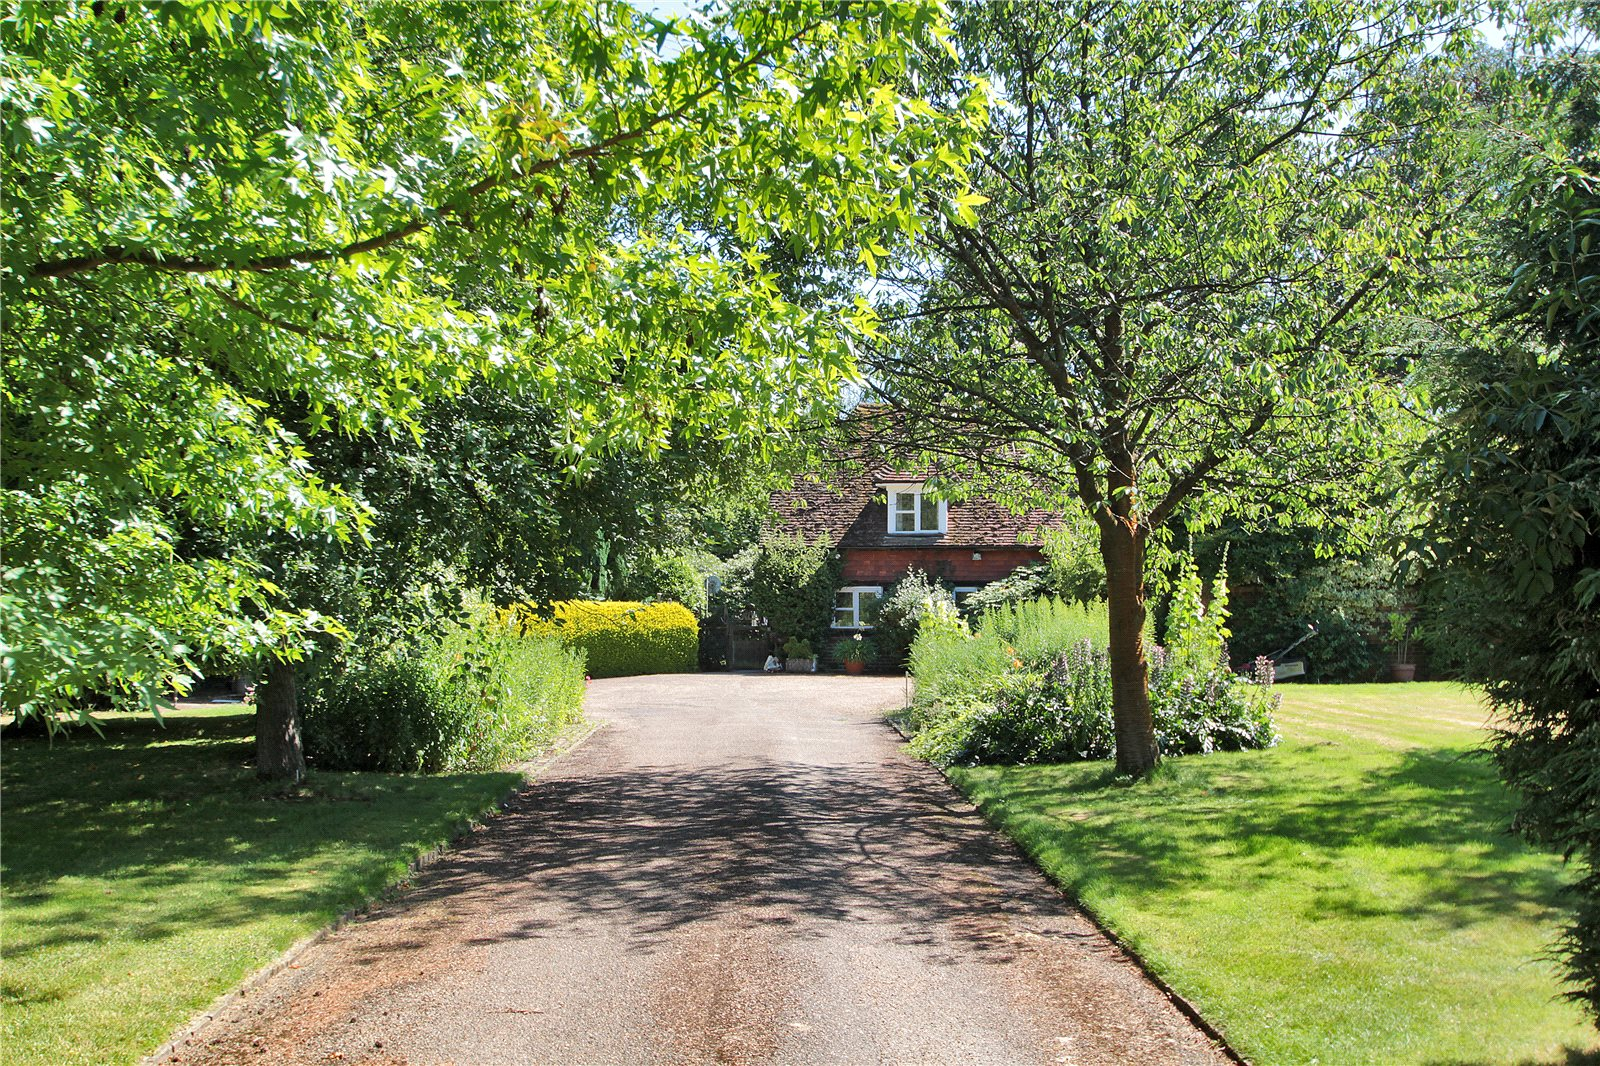 Additional photo for property listing at Shernden Lane, Marsh Green, Edenbridge, Kent, TN8 Edenbridge, Anh Quốc